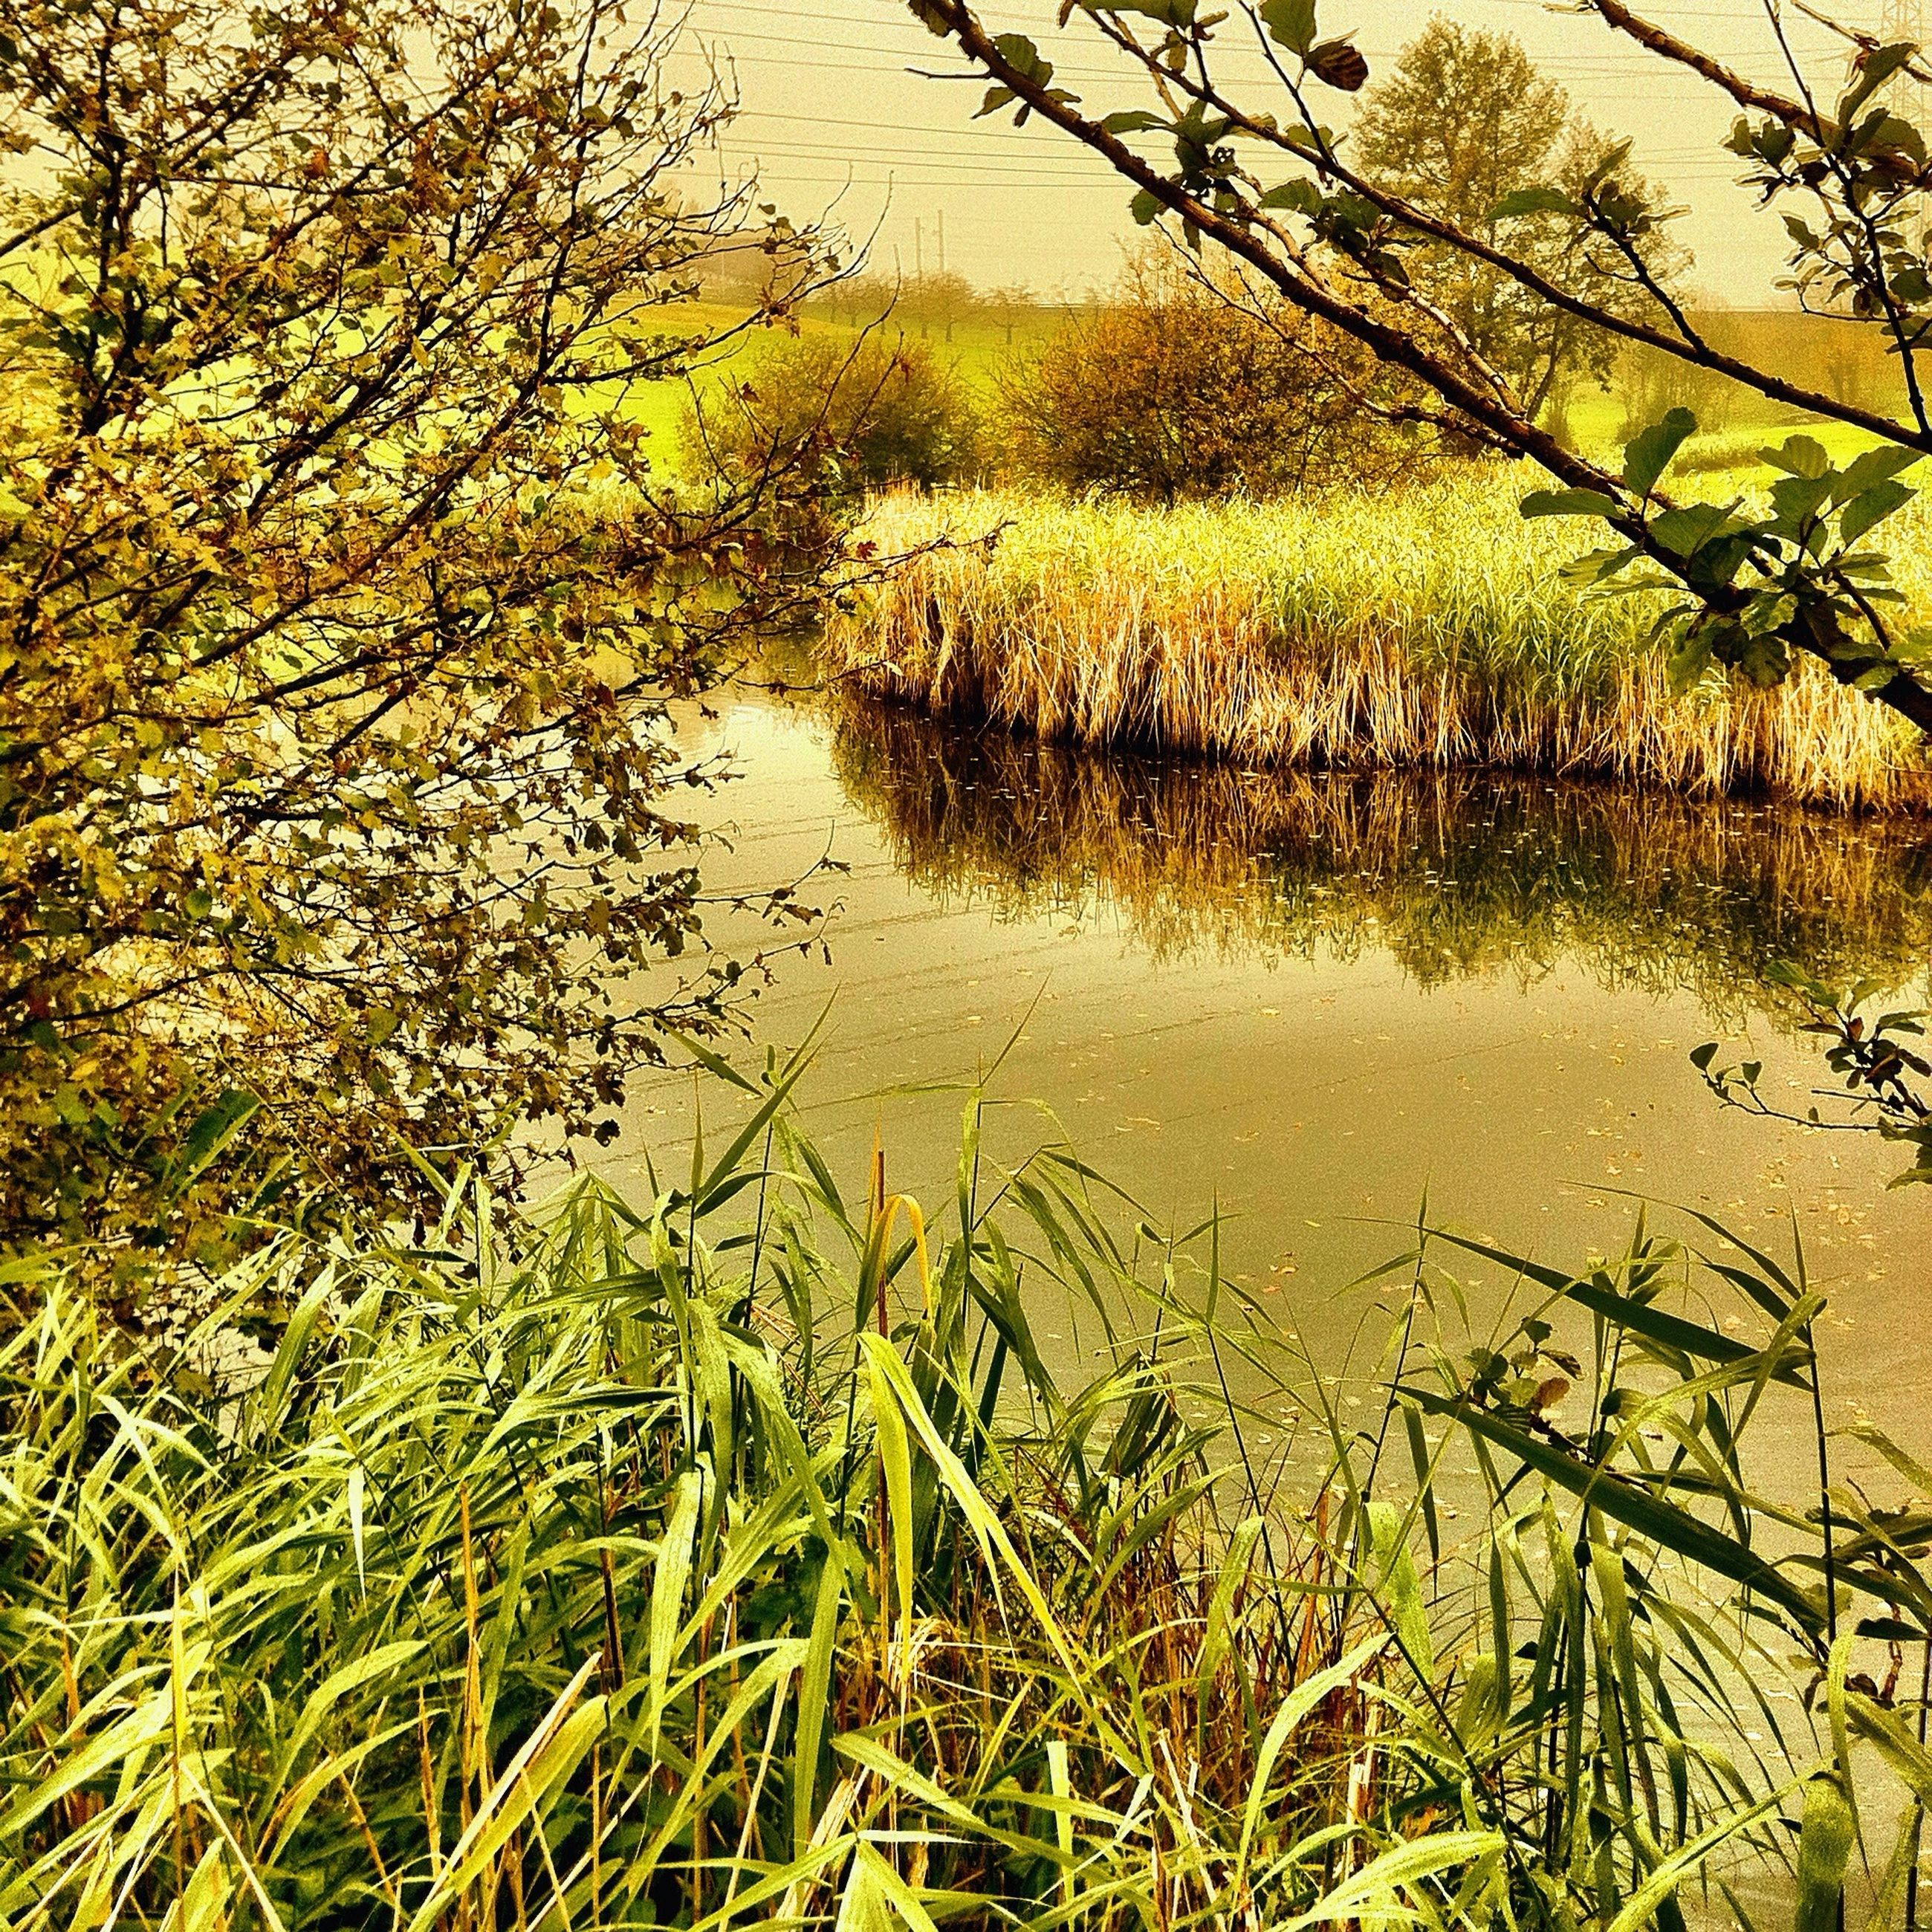 water, grass, lake, growth, tranquility, reflection, plant, nature, tranquil scene, beauty in nature, tree, scenics, green color, river, branch, day, no people, outdoors, lakeshore, idyllic